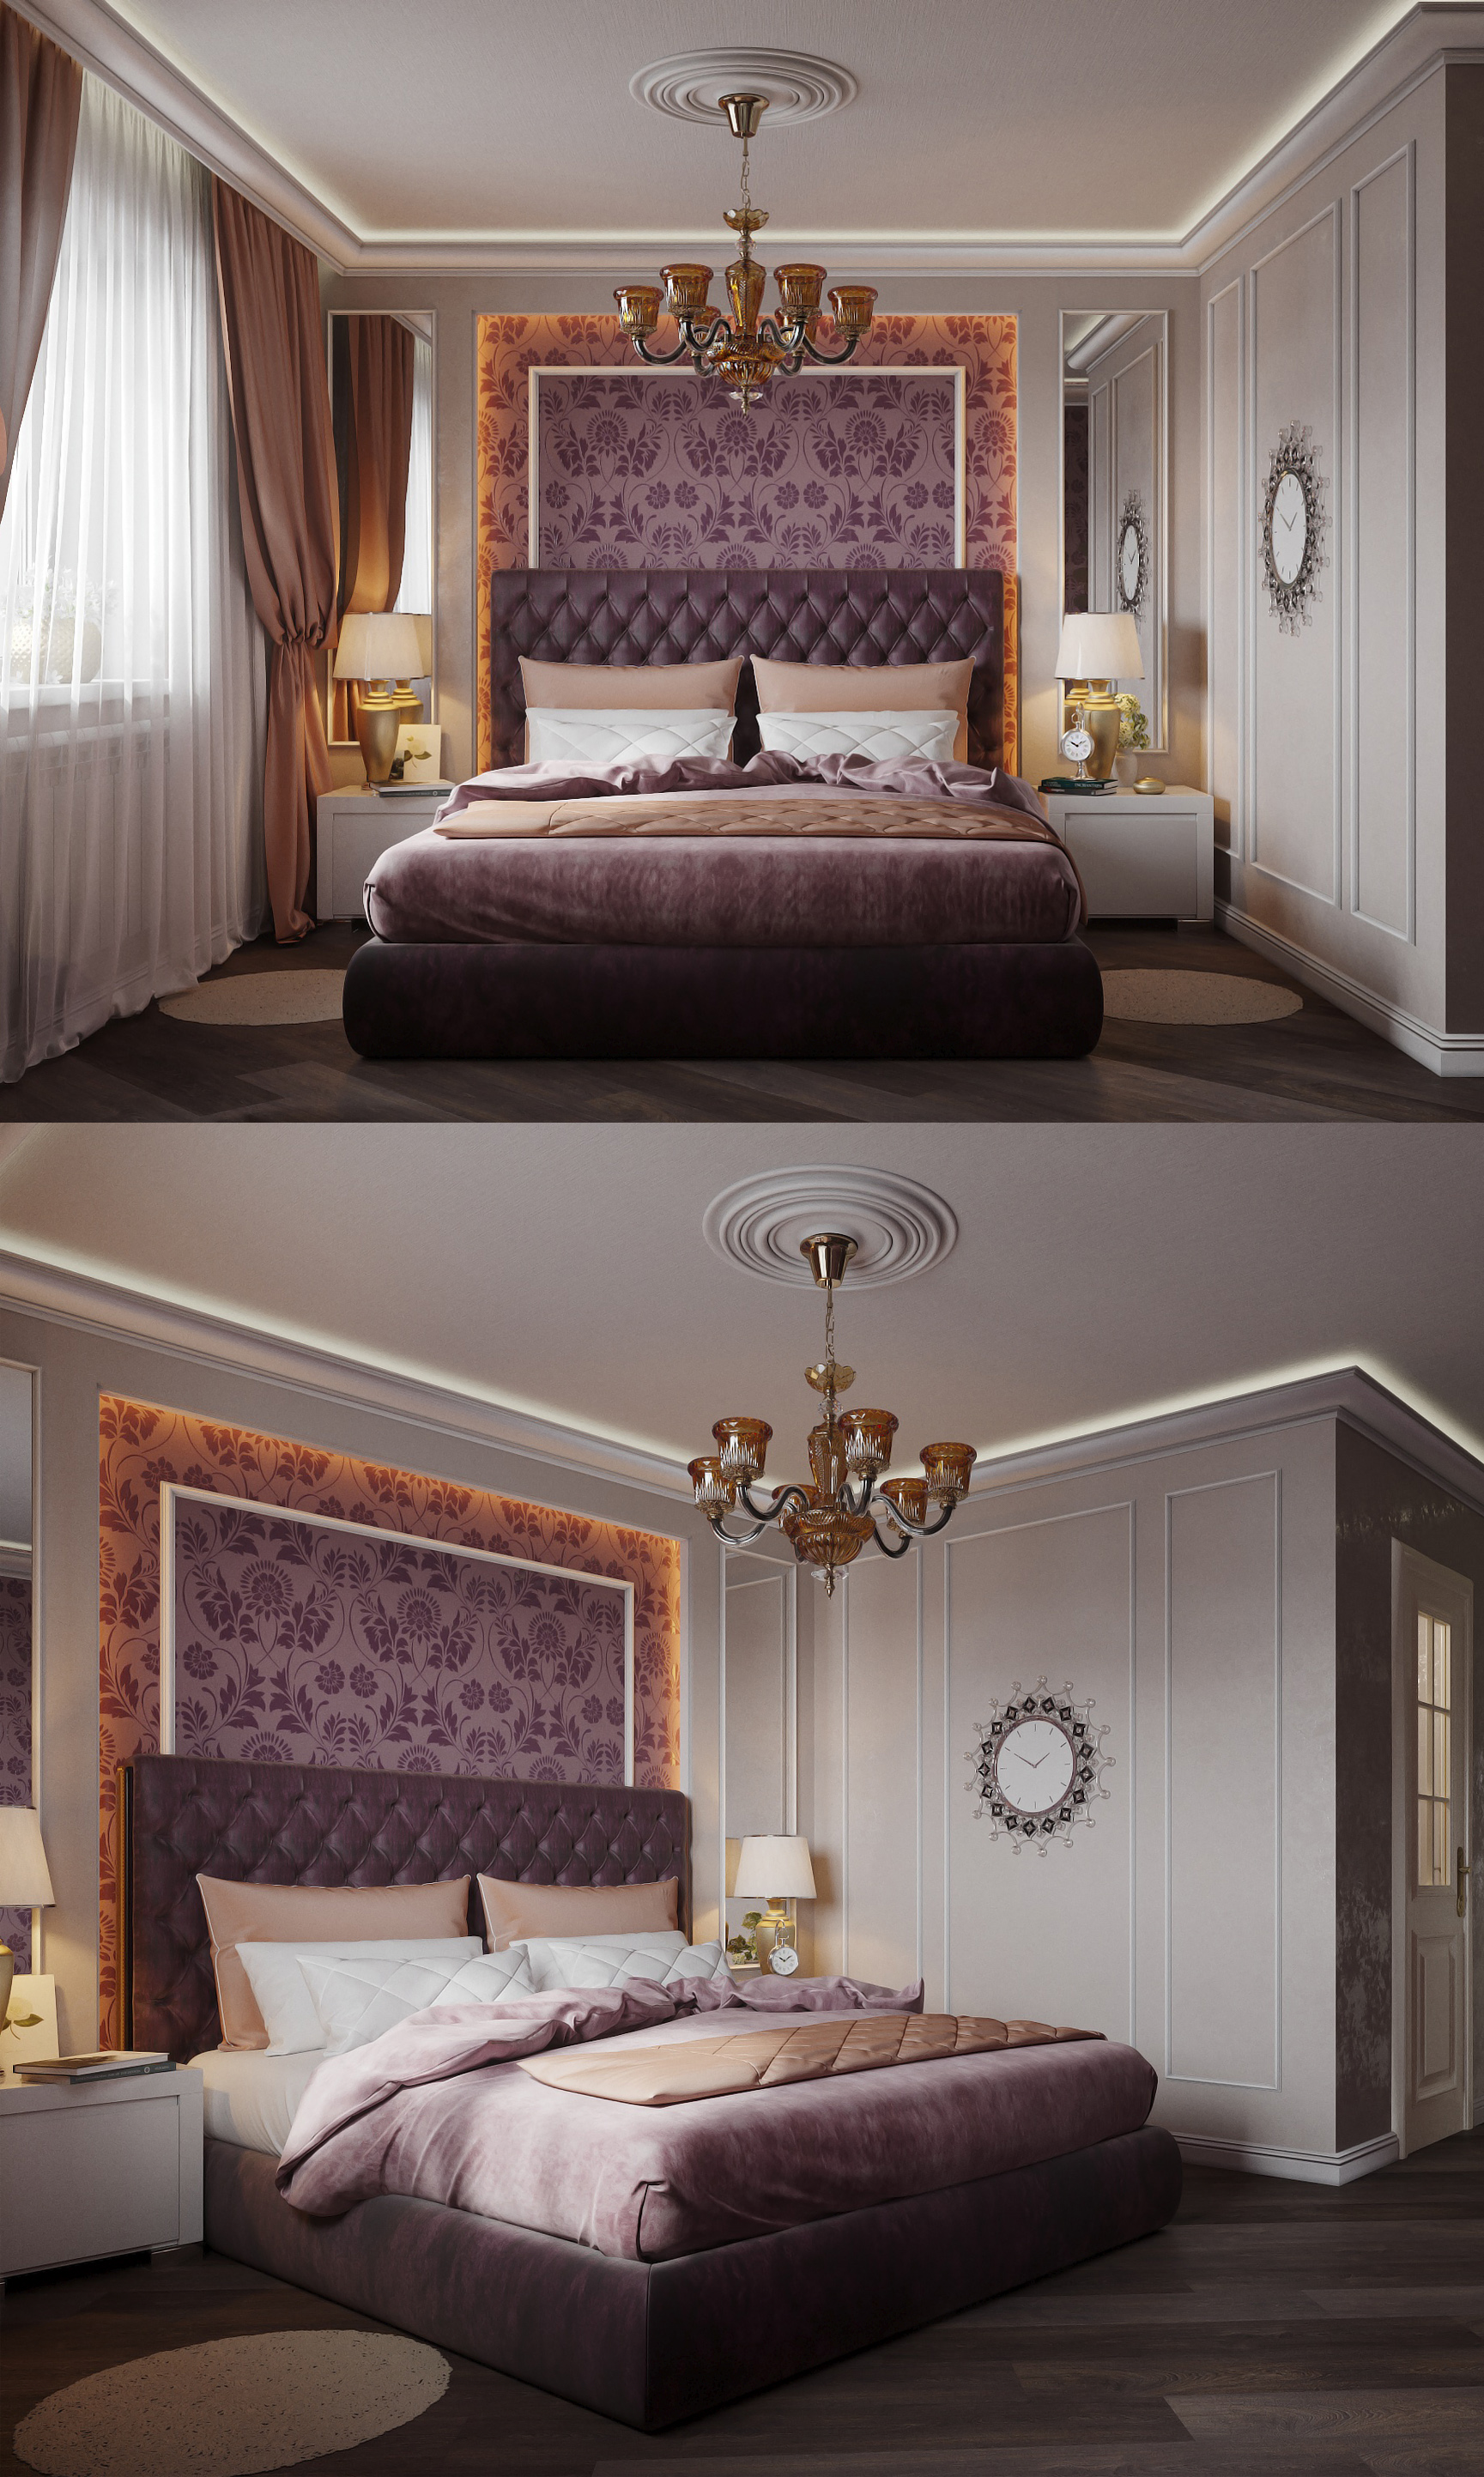 3d visualization of the project in the Bedroom 3d max, render corona render of Полина Ходина